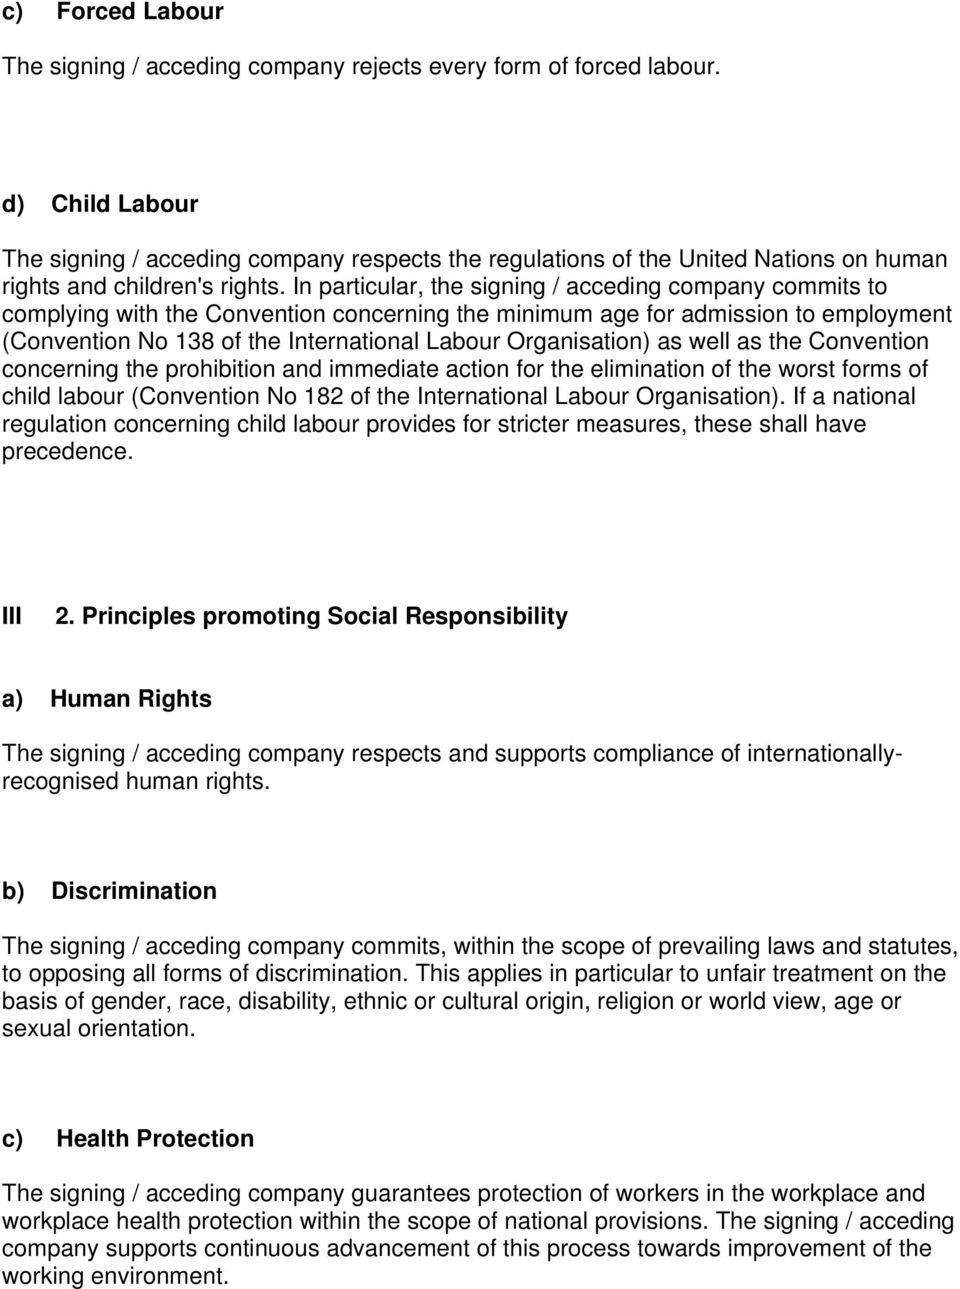 In particular, the signing / acceding company commits to complying with the Convention concerning the minimum age for admission to employment (Convention No 138 of the International Labour